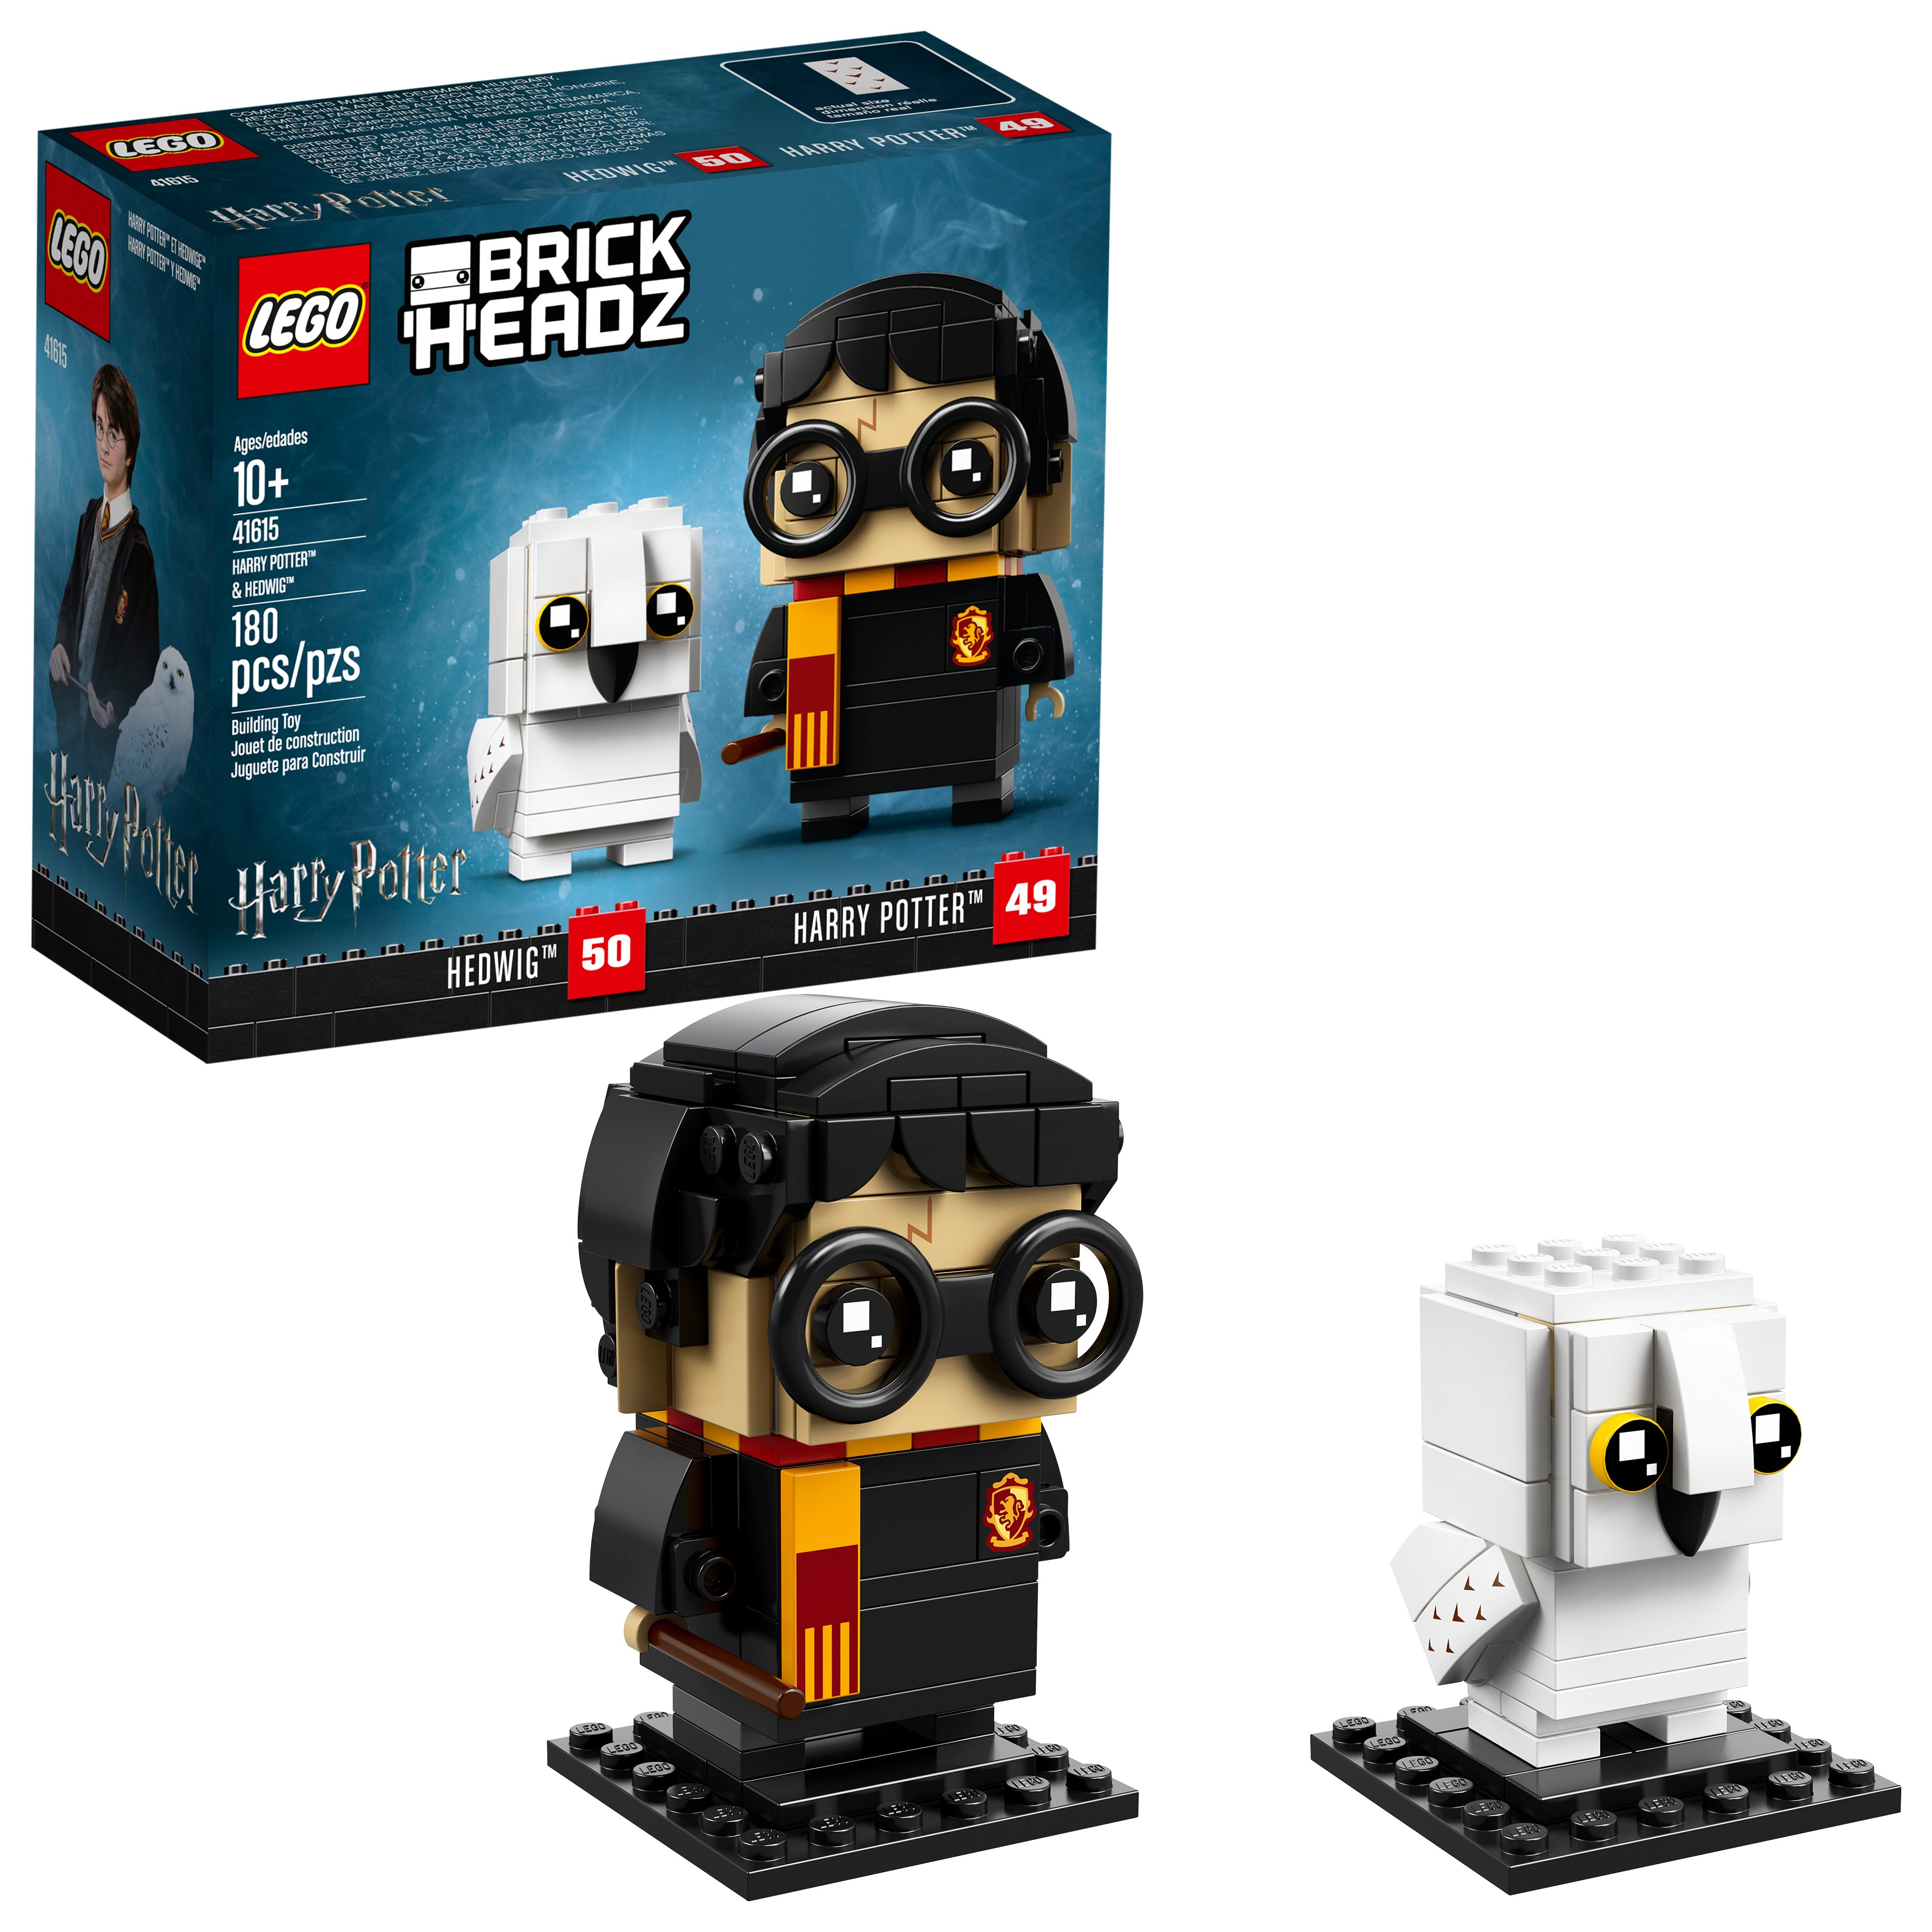 Lego brickheadz harry potter & hedwig 41615